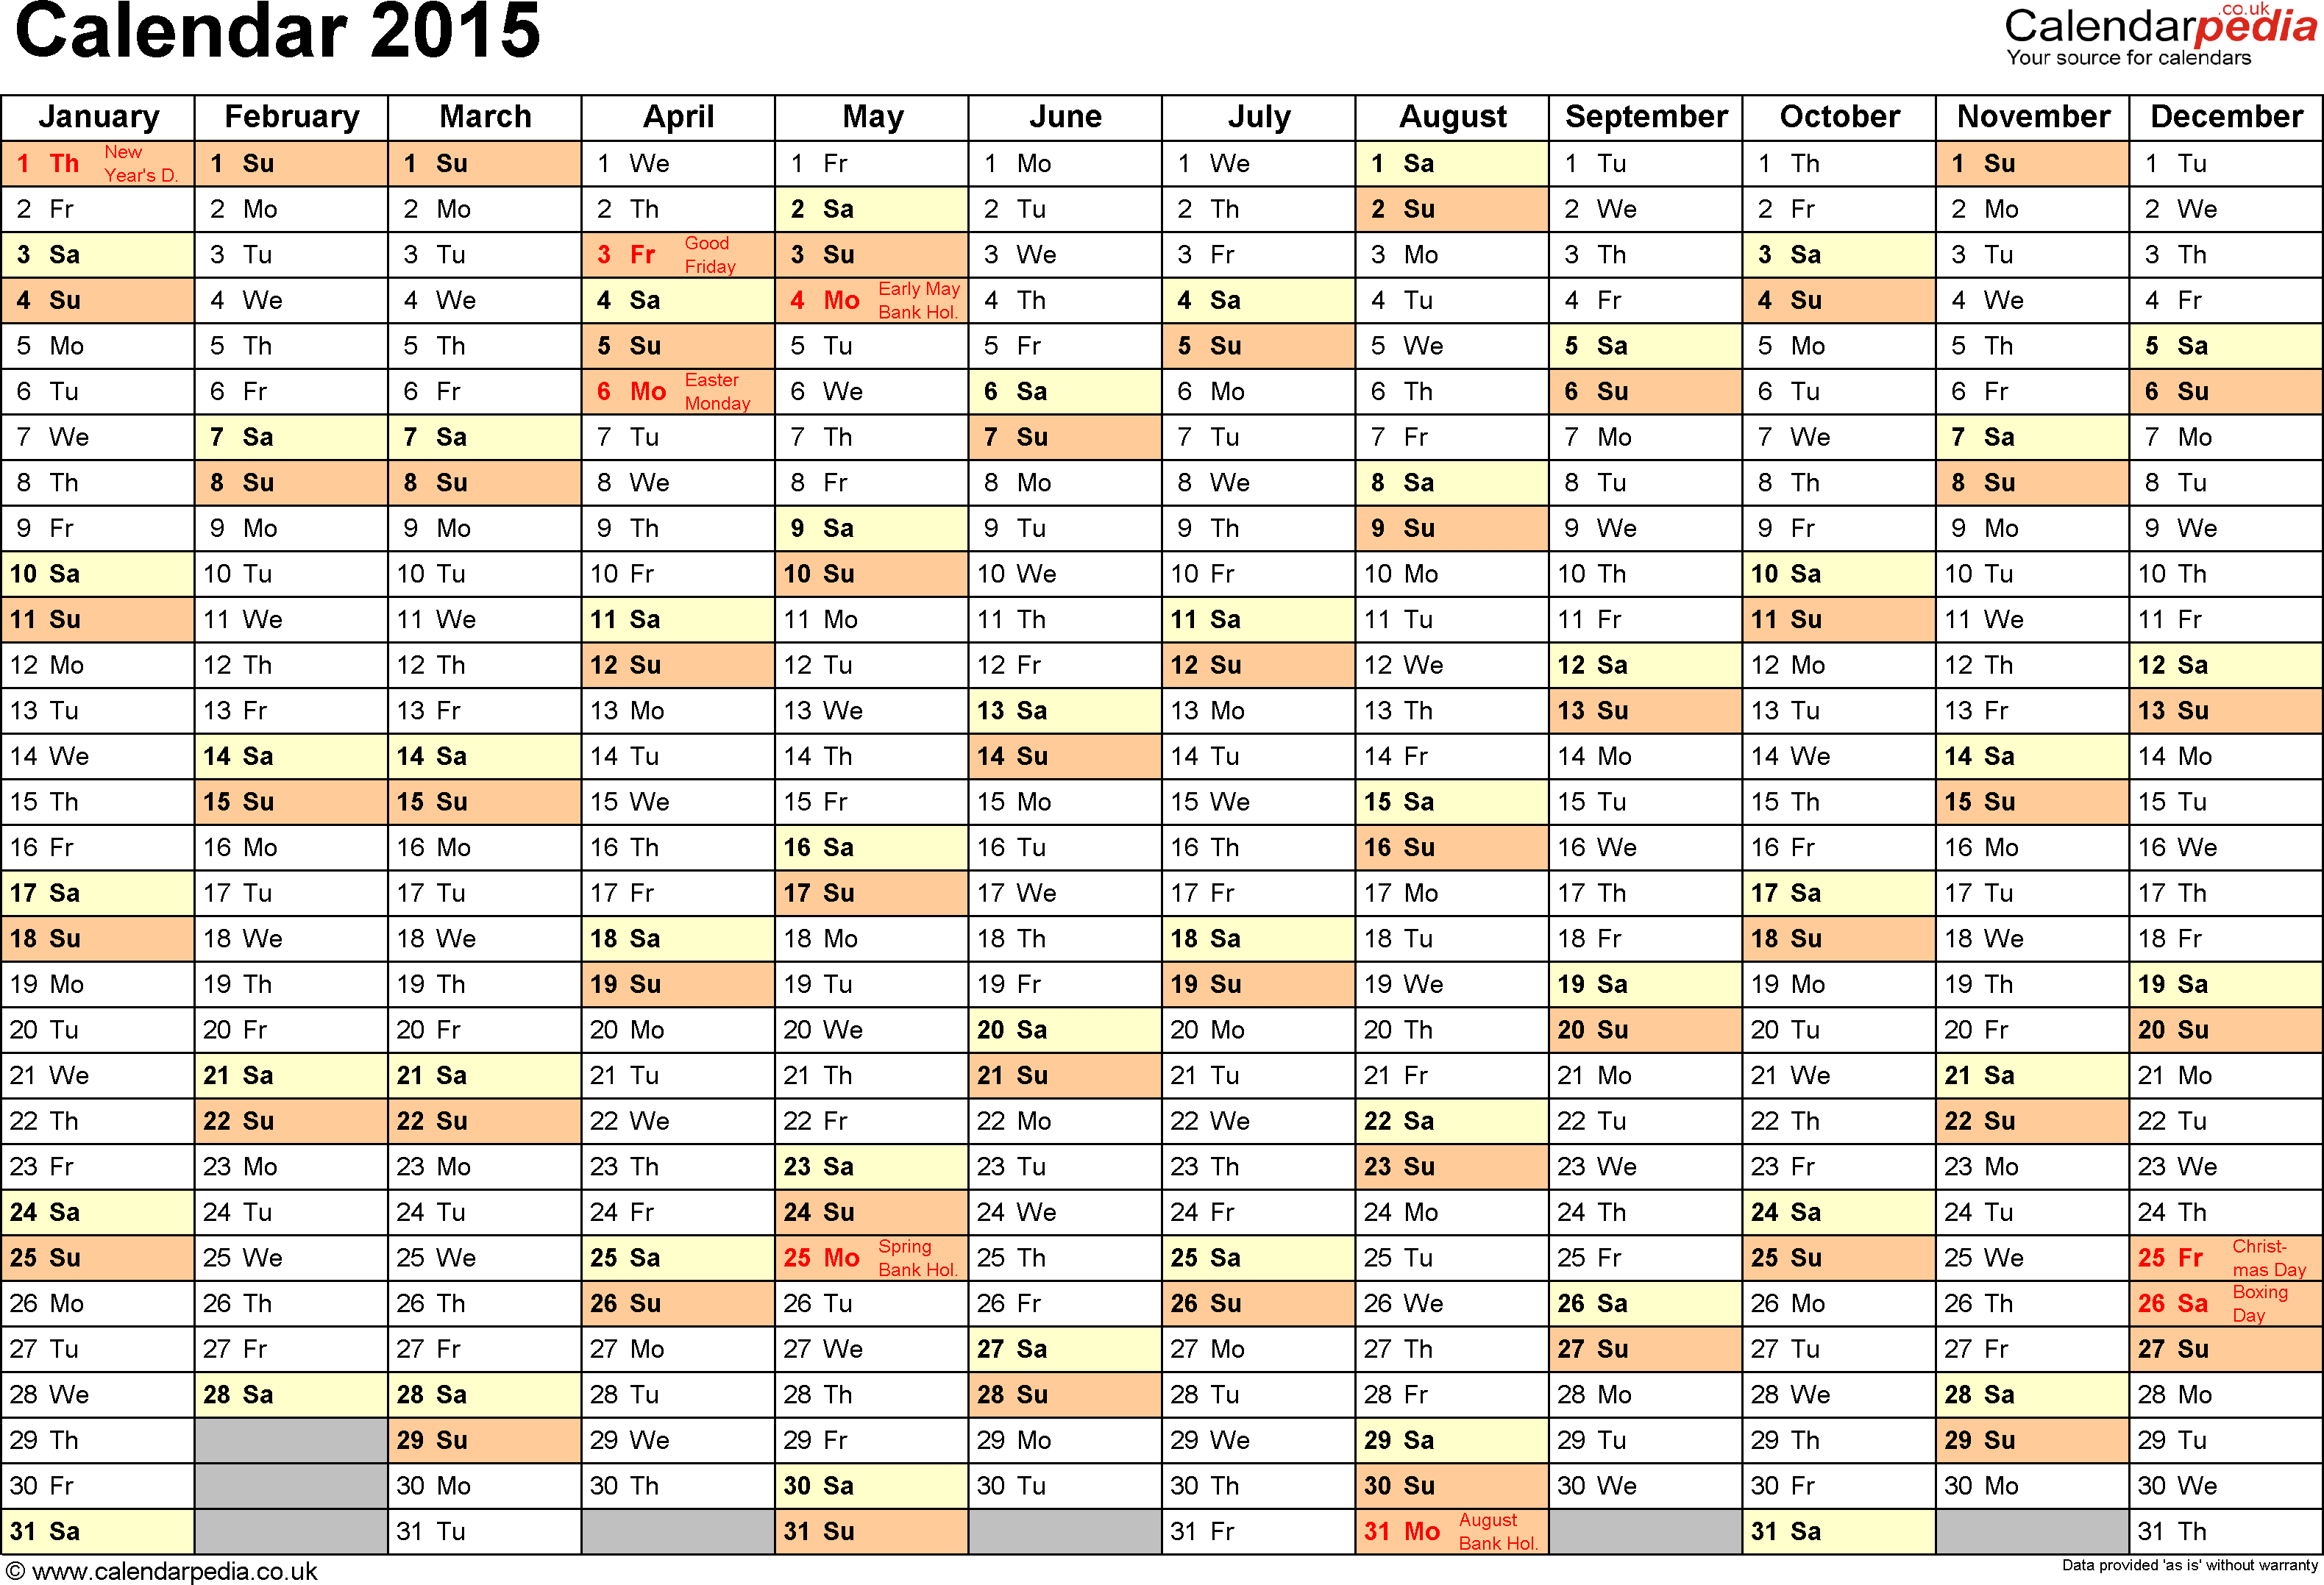 Template 2: Yearly calendar 2015 as PDF template, landscape orientation, A4, 1 page, months horizontally, days vertically, with UK bank holidays and week numbers